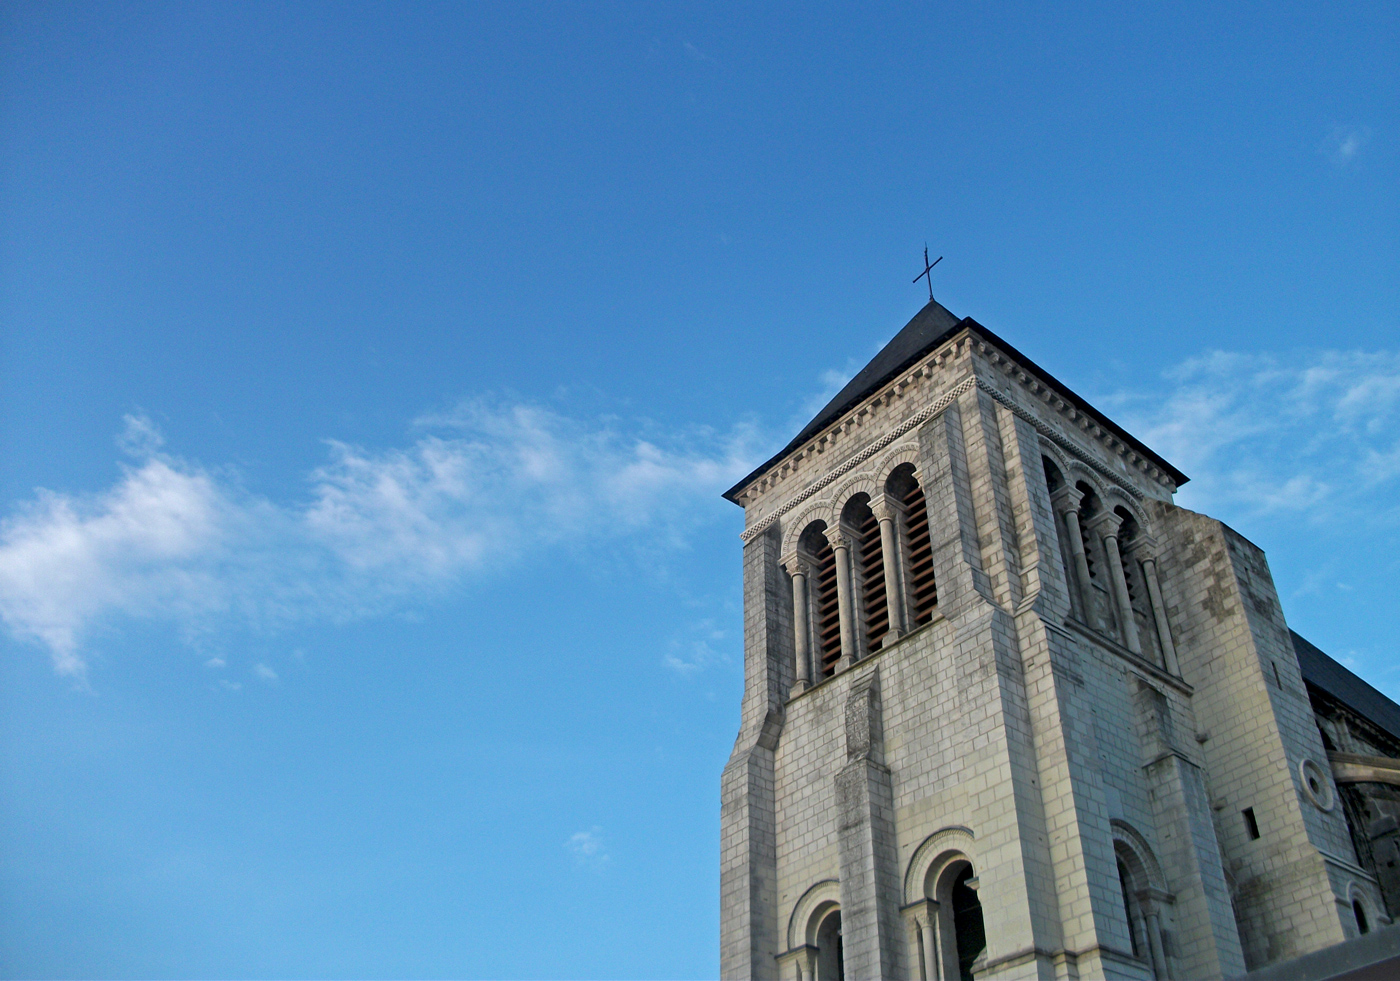 Tour de l'église St Julien, Tours